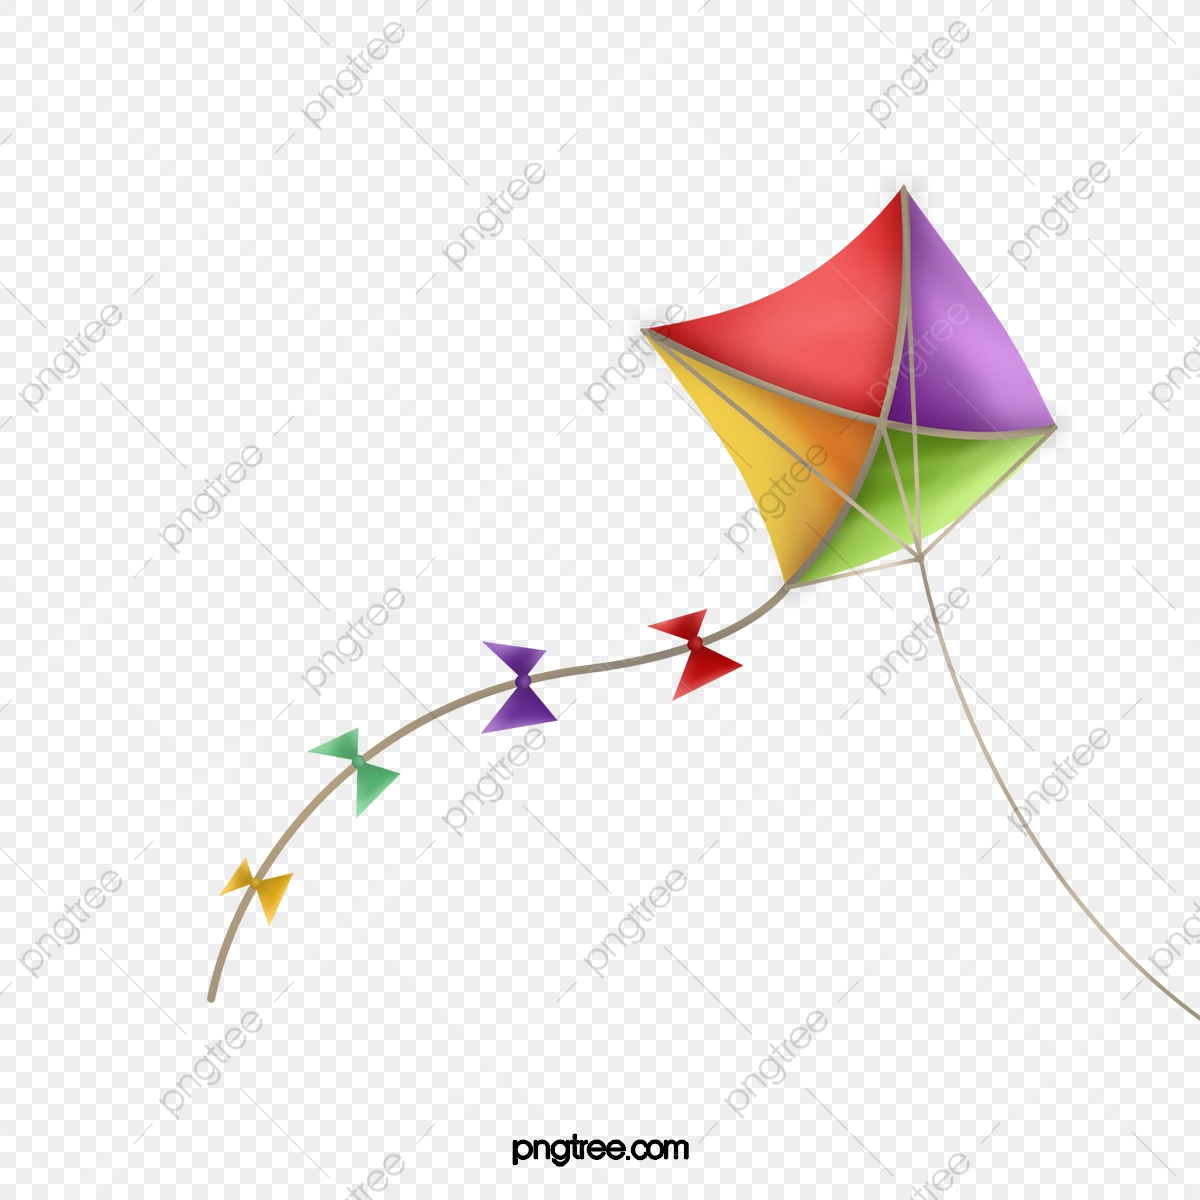 Kites Png Vector Psd And Clipart With Transparent Background For Free Download Pngtree